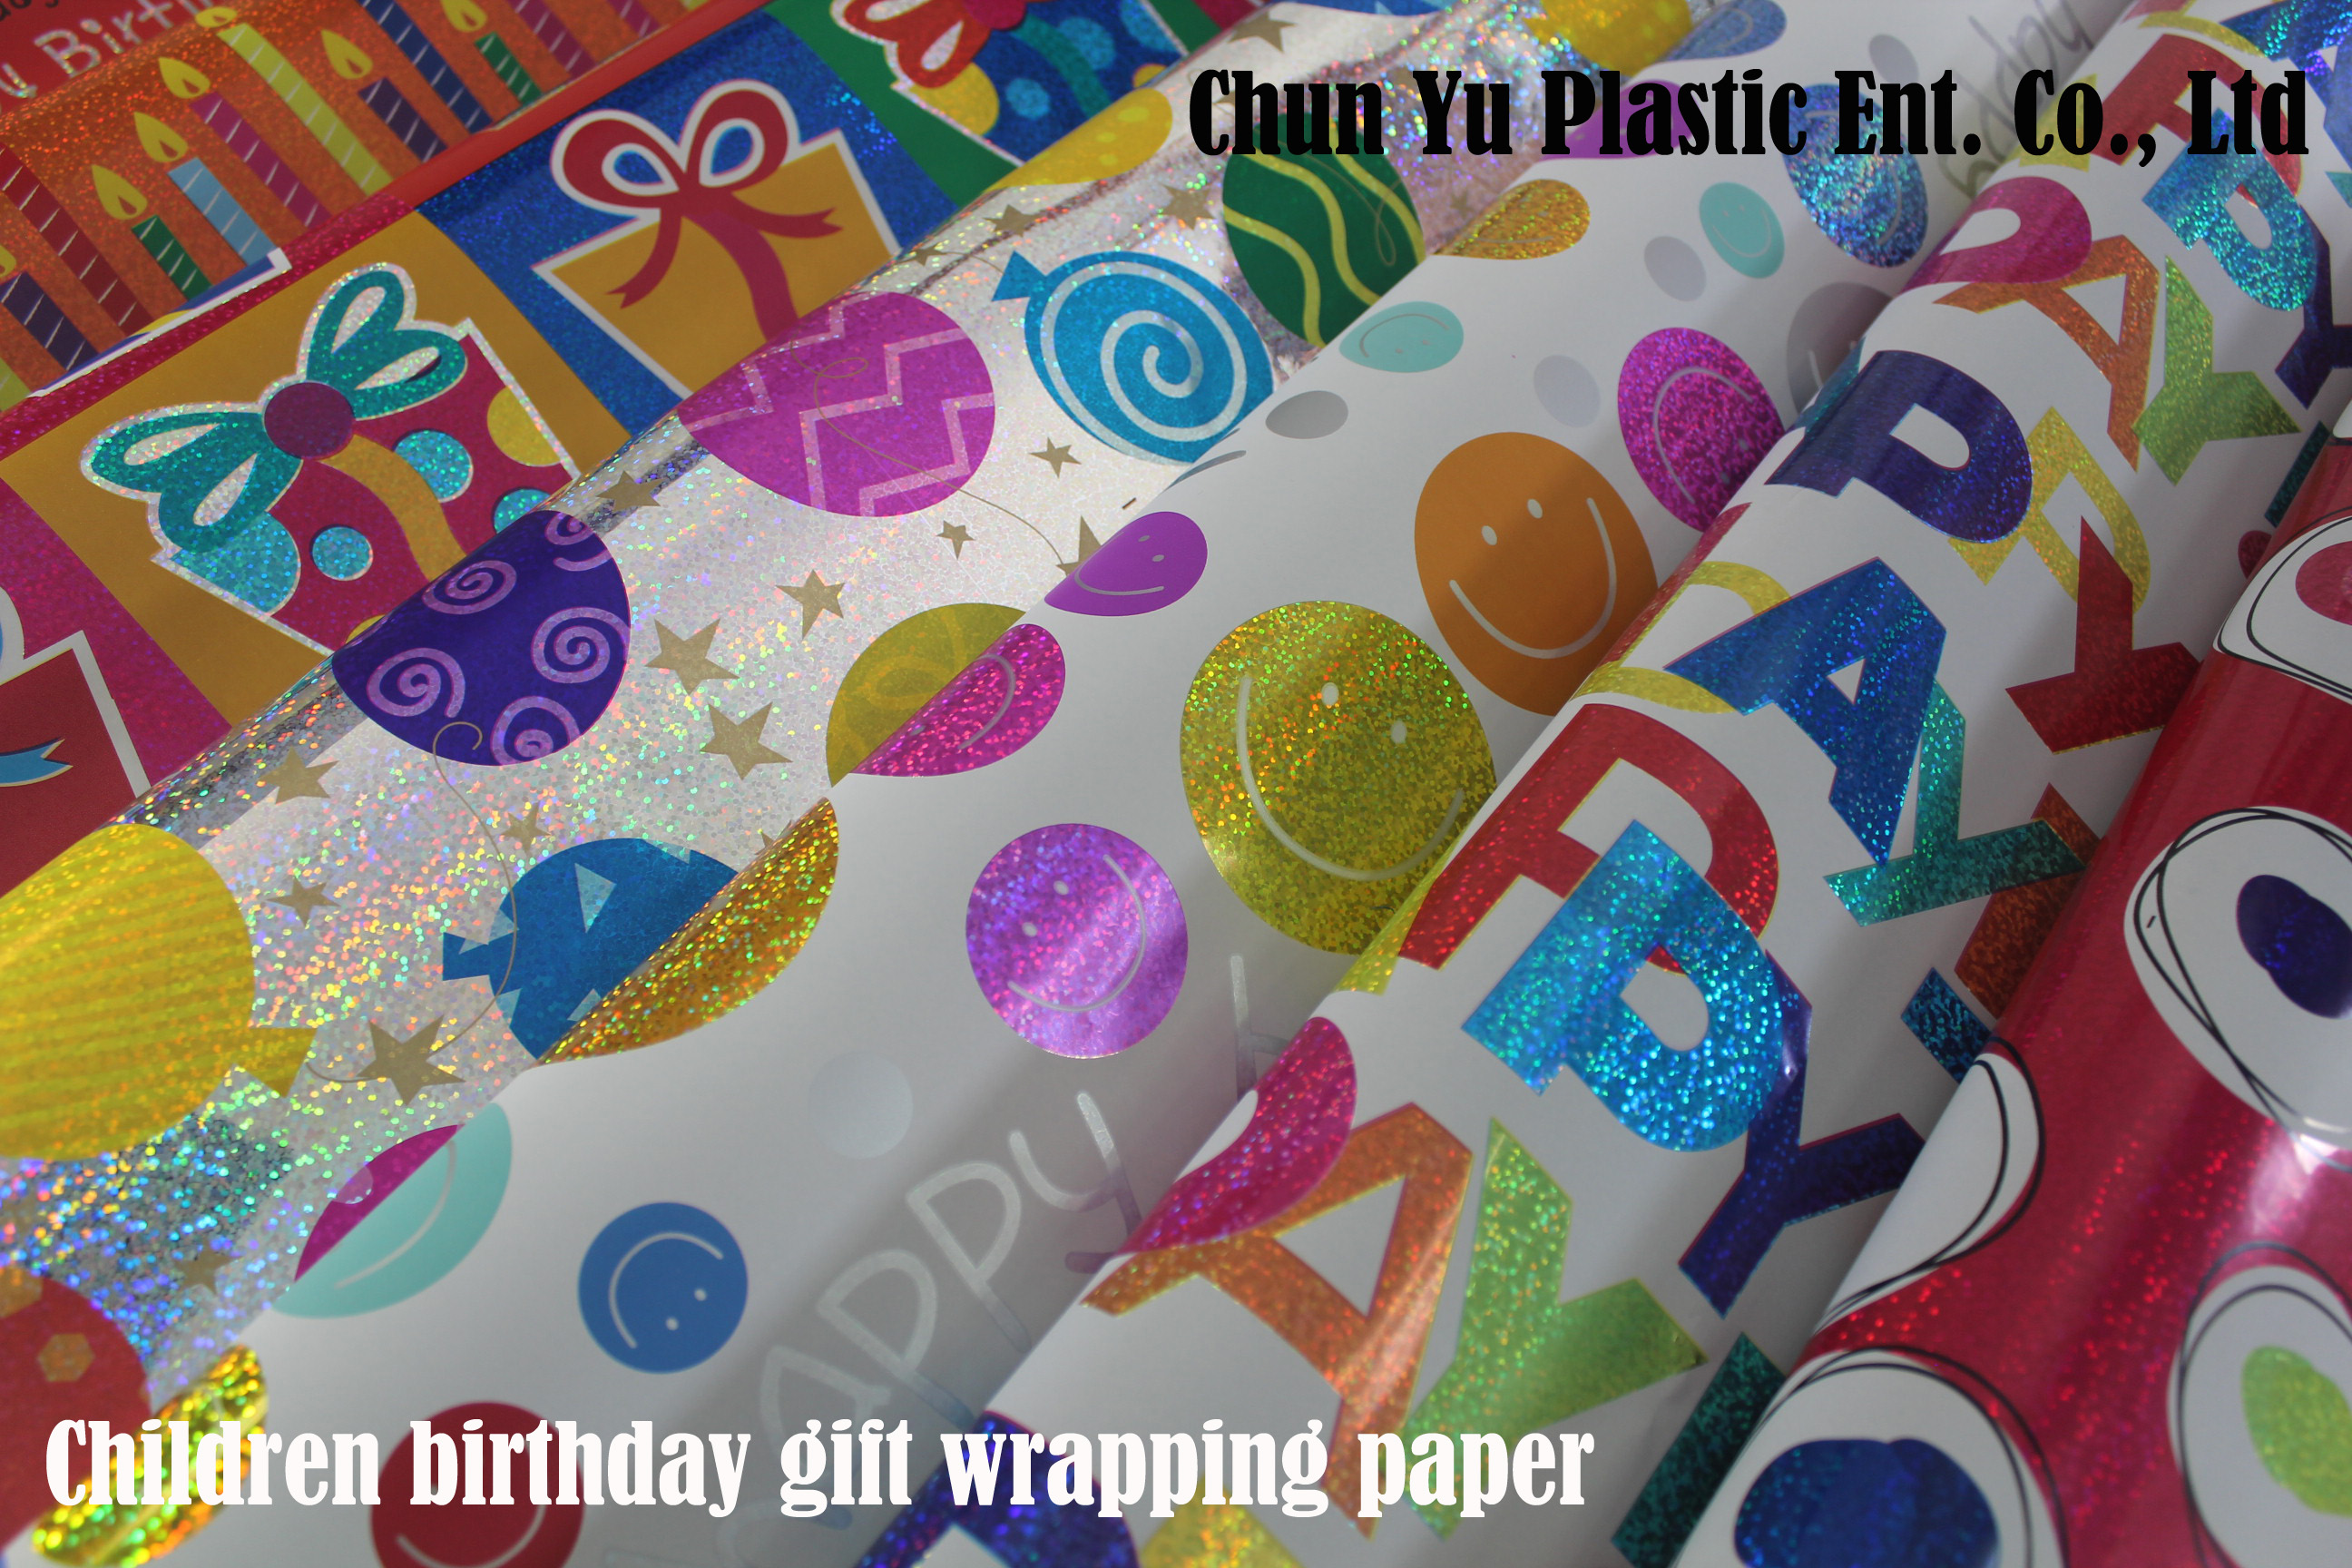 Gift wrapping paper printed with kid designs for birthday and celebration parties. We have birthday wrapping paper for girls and boys.